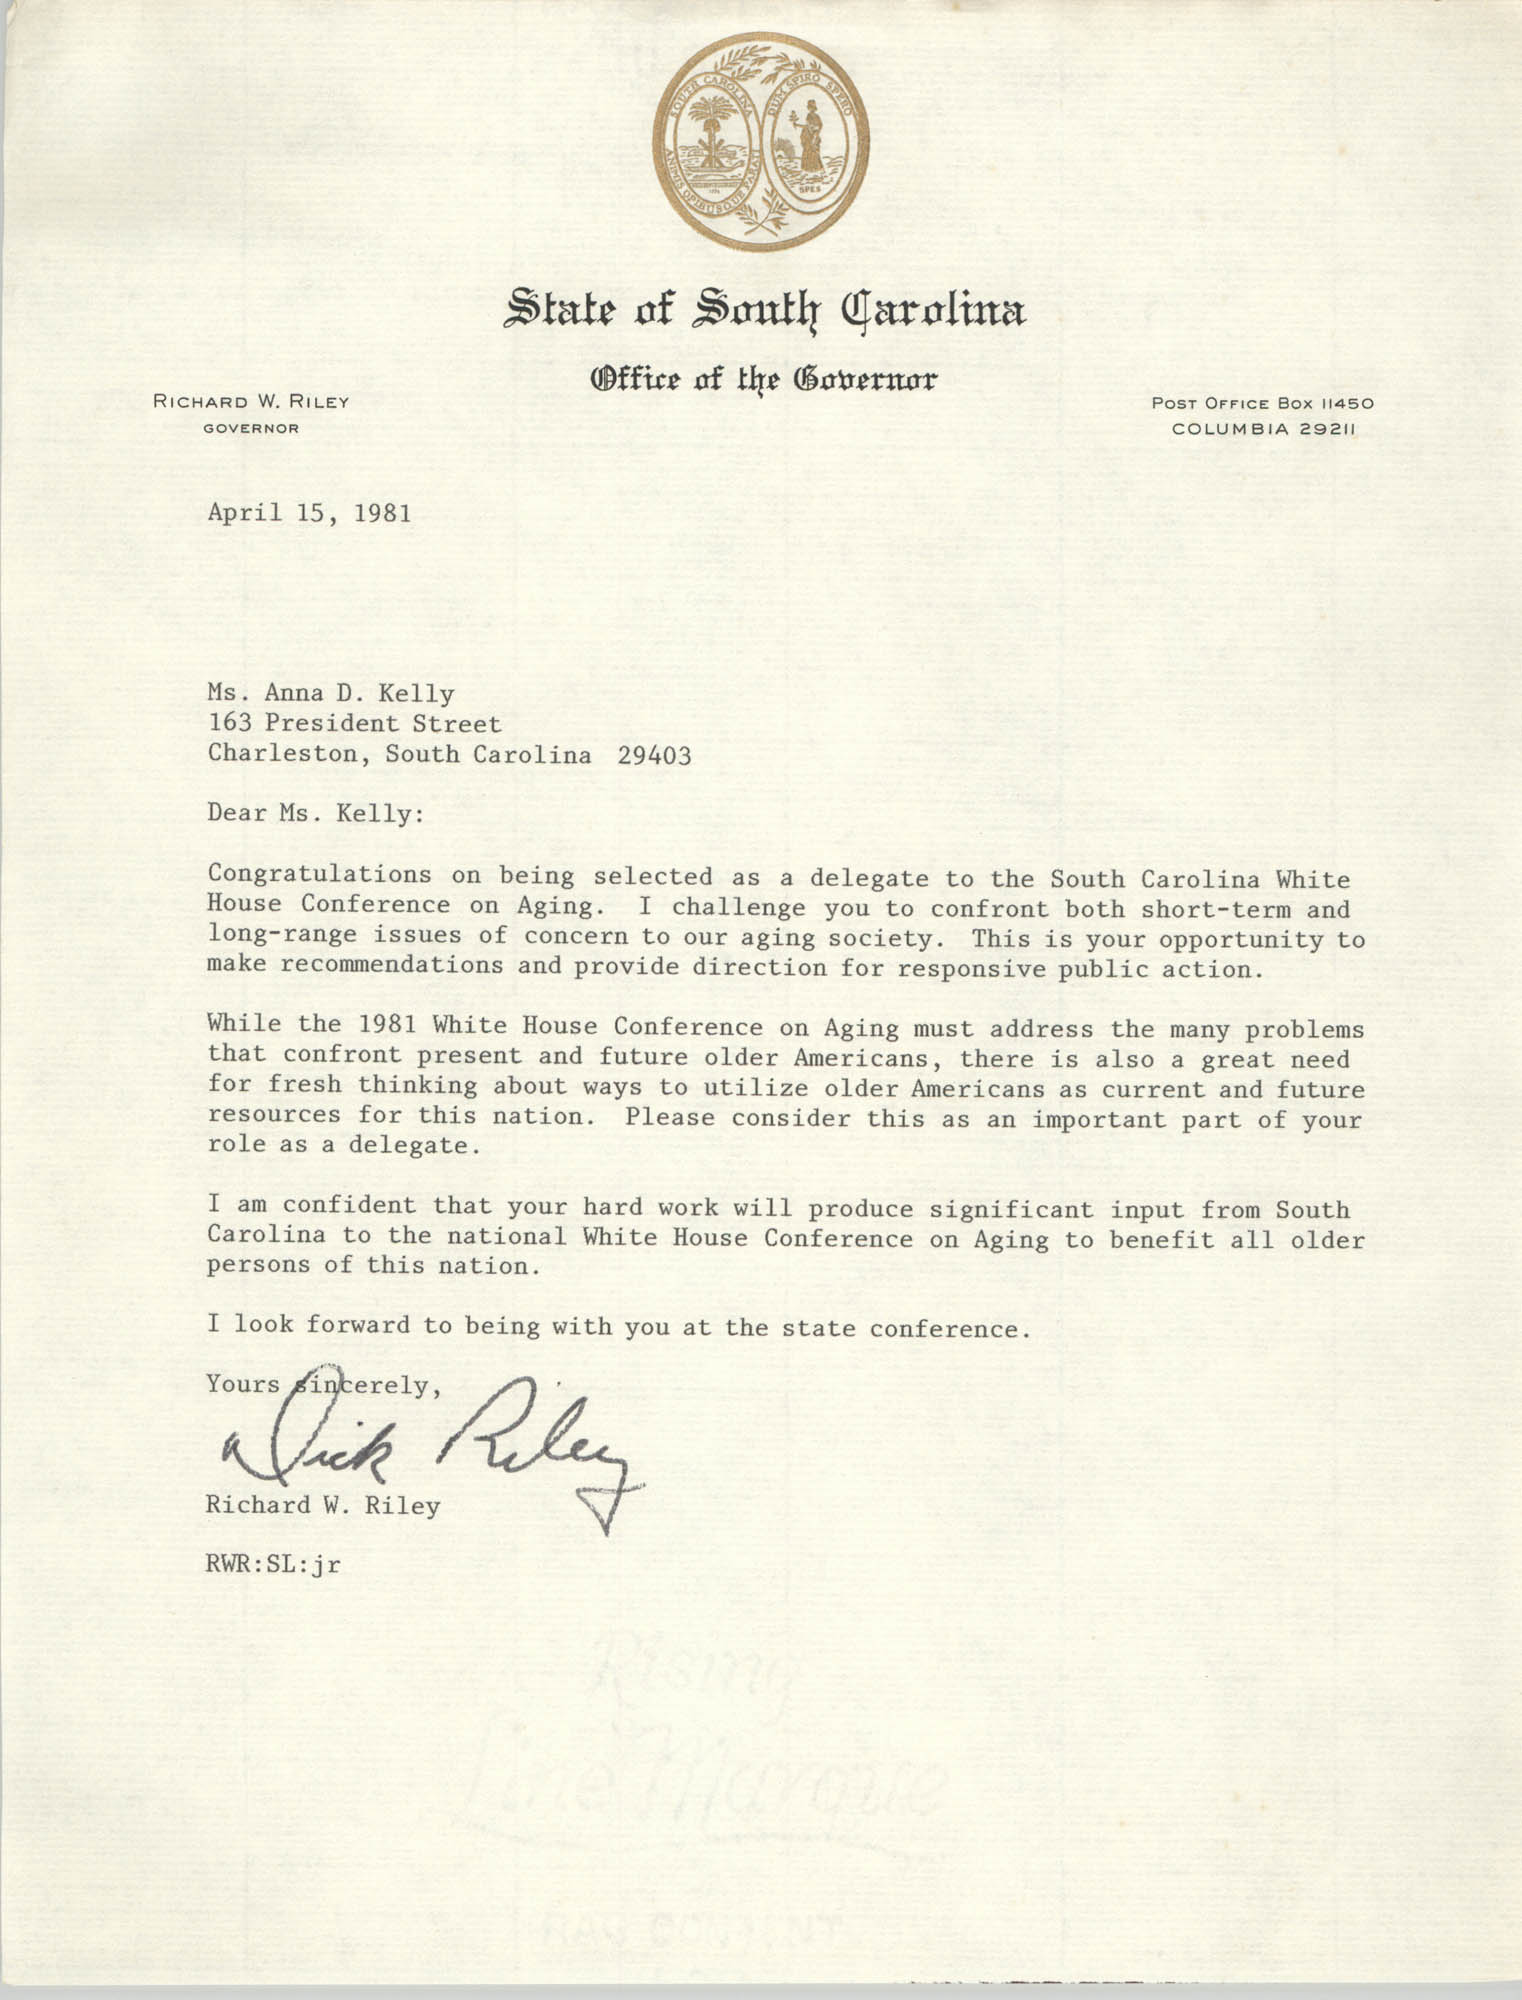 Letter from Richard W. Riley to Anna D. Kelly, April 15, 1981